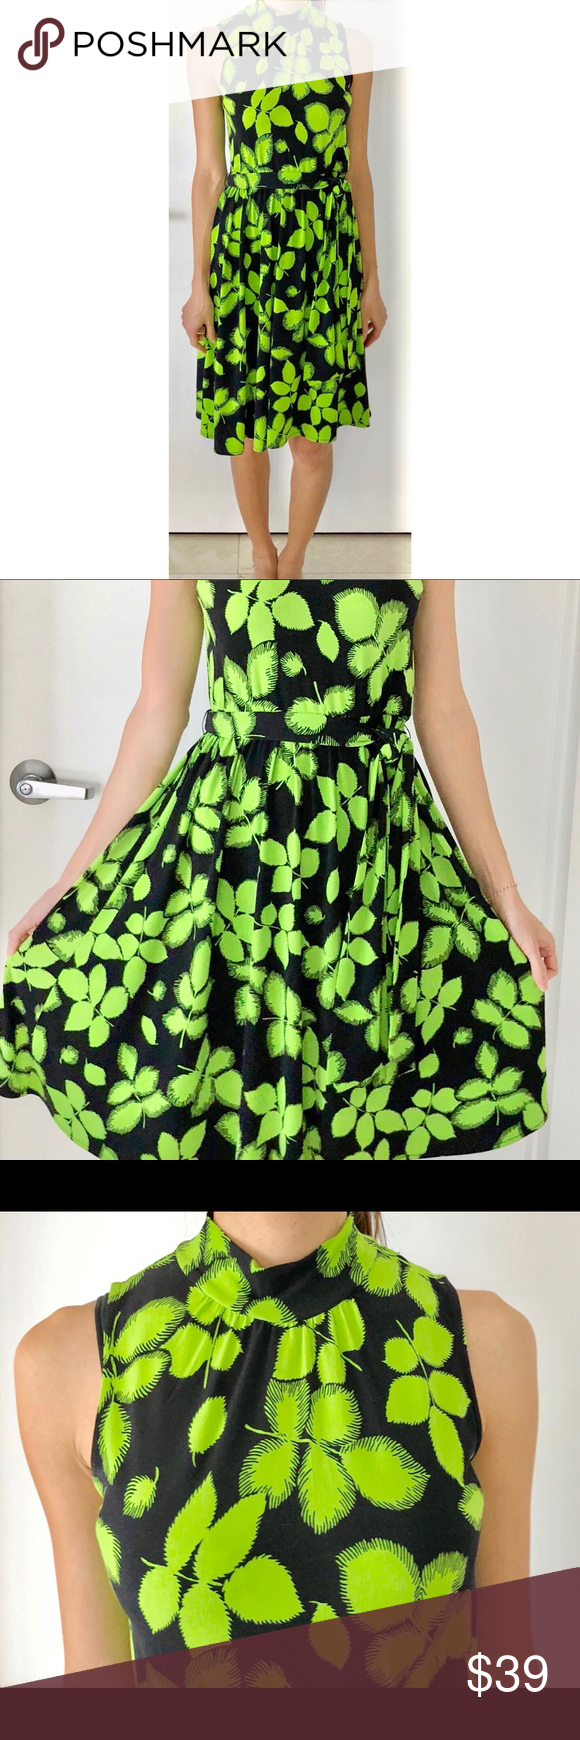 Gorgeous Leaf Print Midi Dress With Vibrant Colors Gorgeous Leaf Print Midi Dress In Vibrant Lime And Navy Lig Printed Midi Dress Element Dress Clothes Design